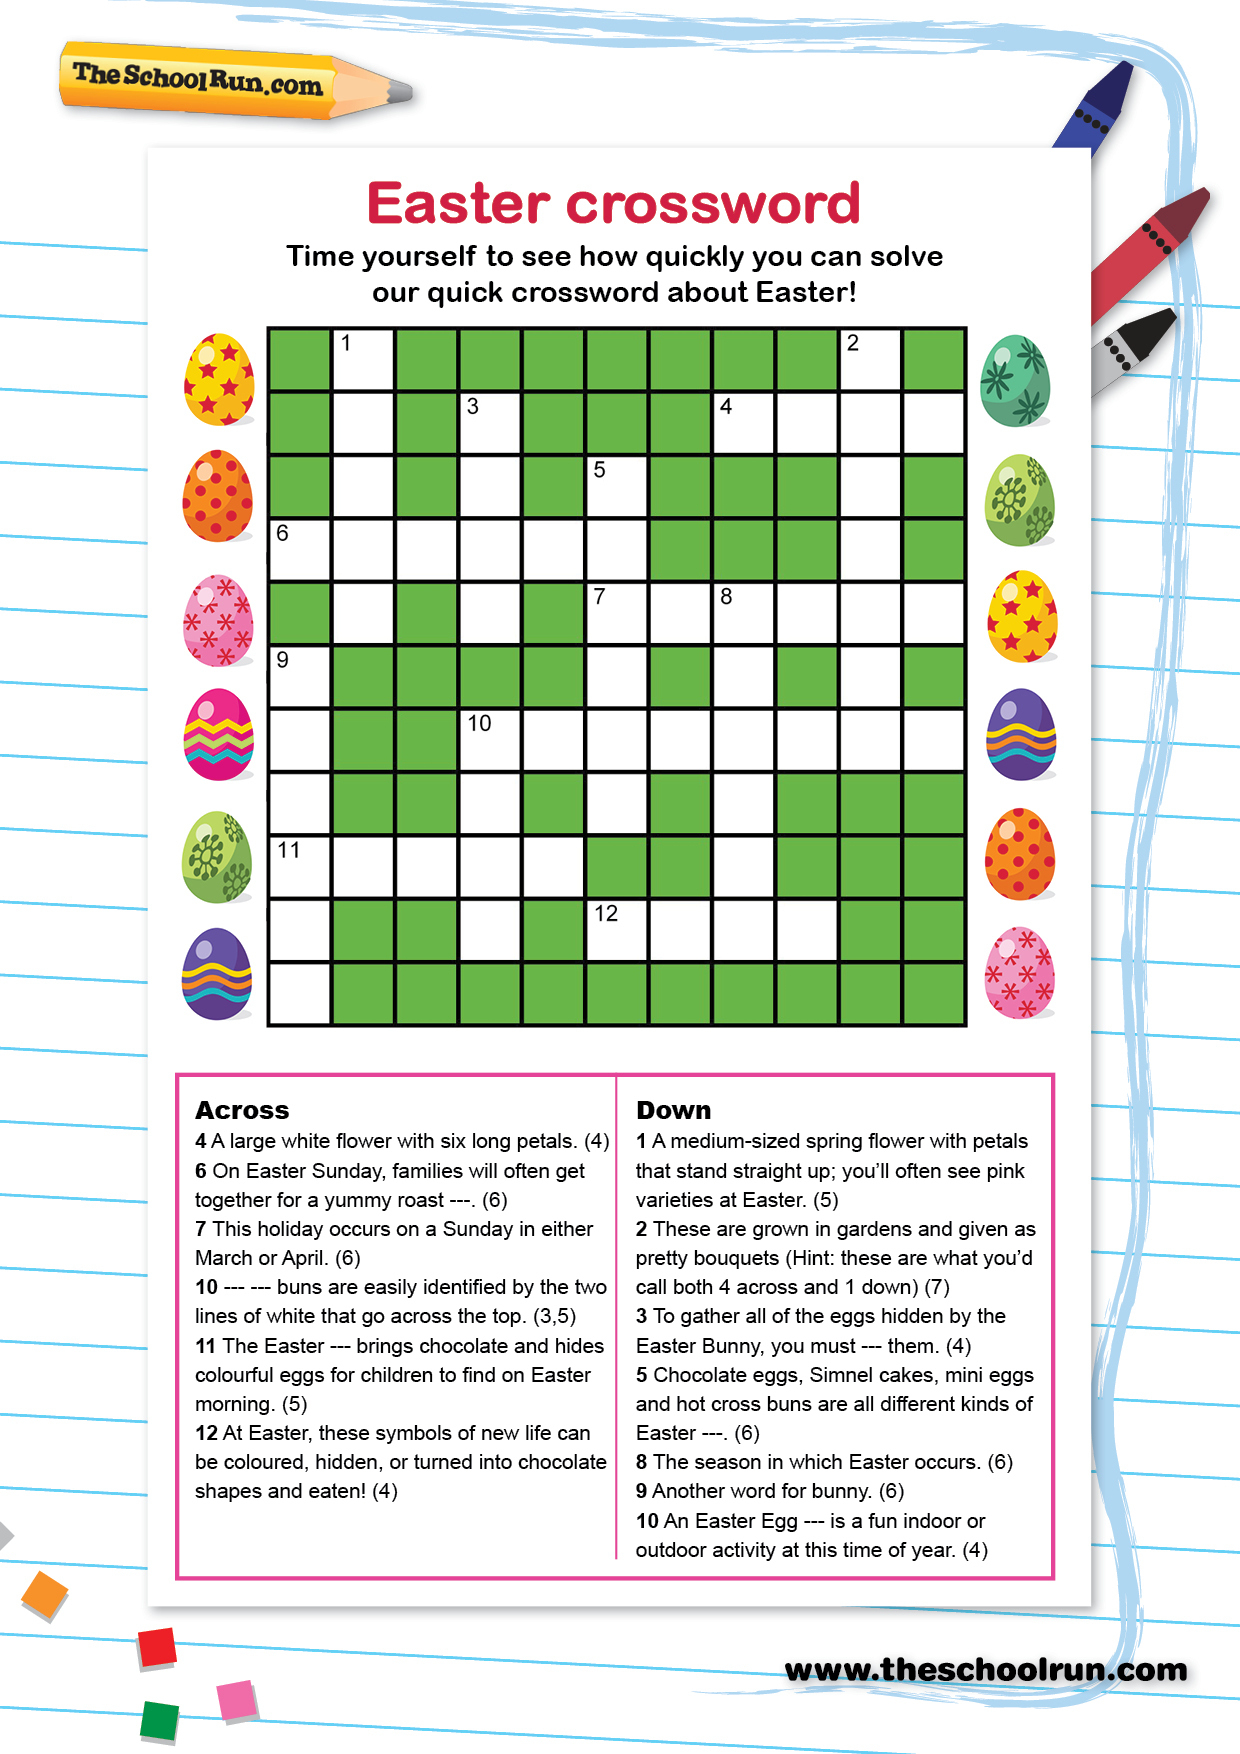 Word Puzzles For Primary School Children | Theschoolrun - Printable Crossword Puzzle For Primary School